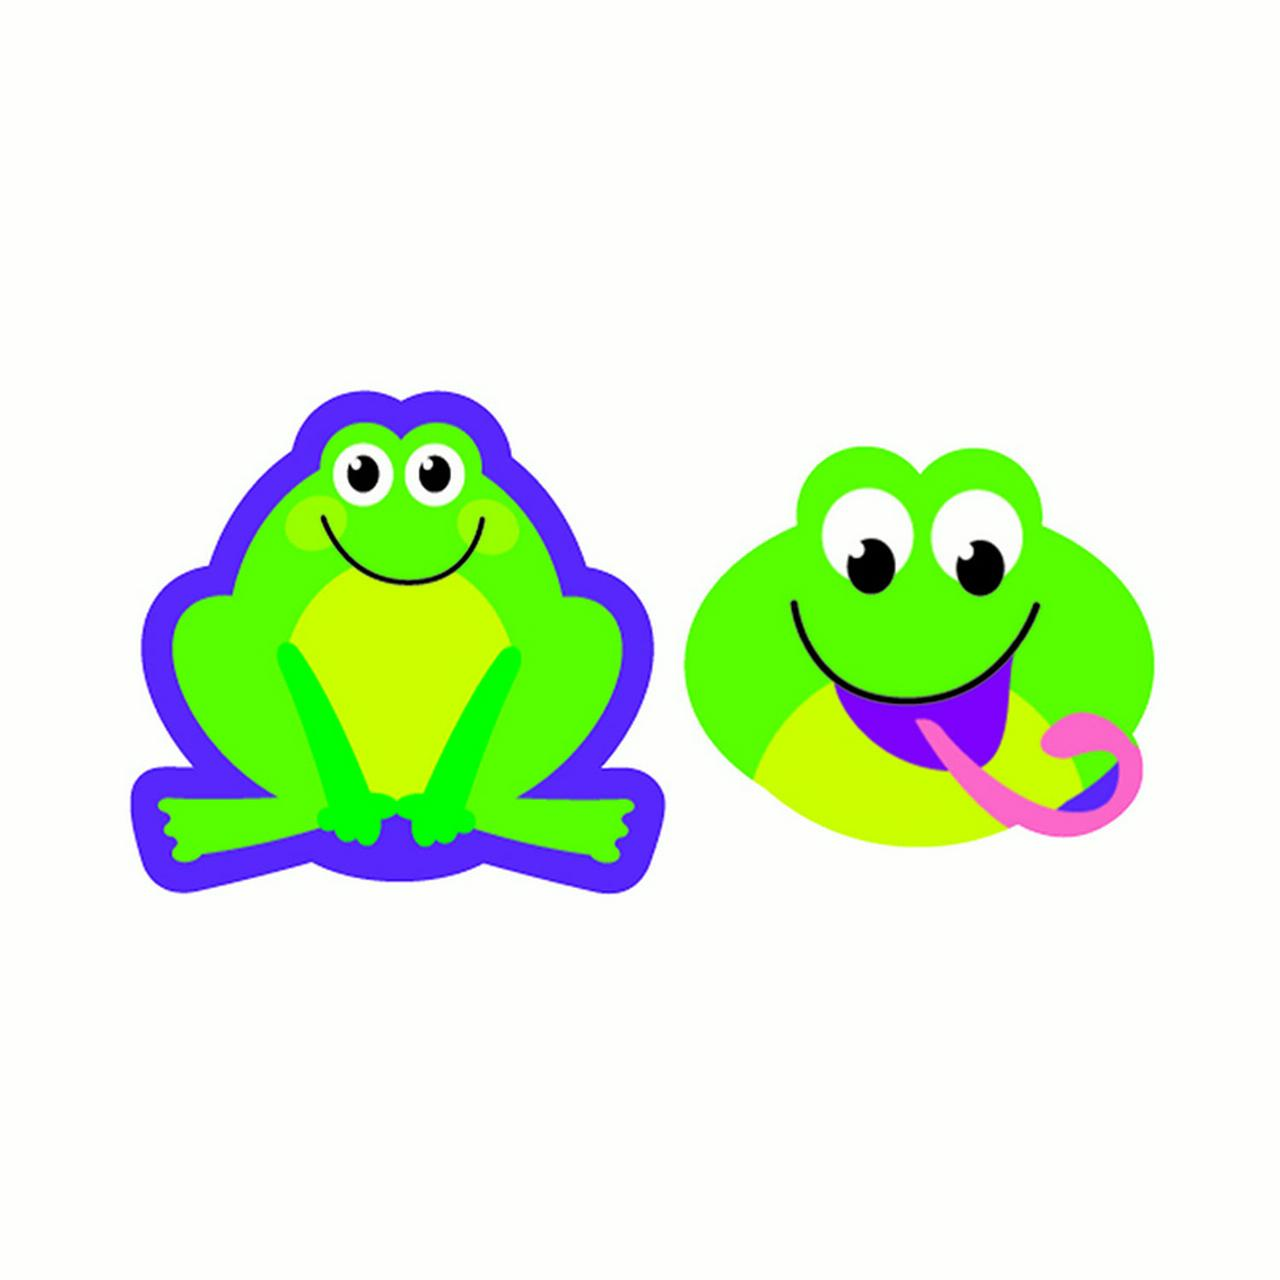 Trend Supershapes Stickers - Frog Frenzy